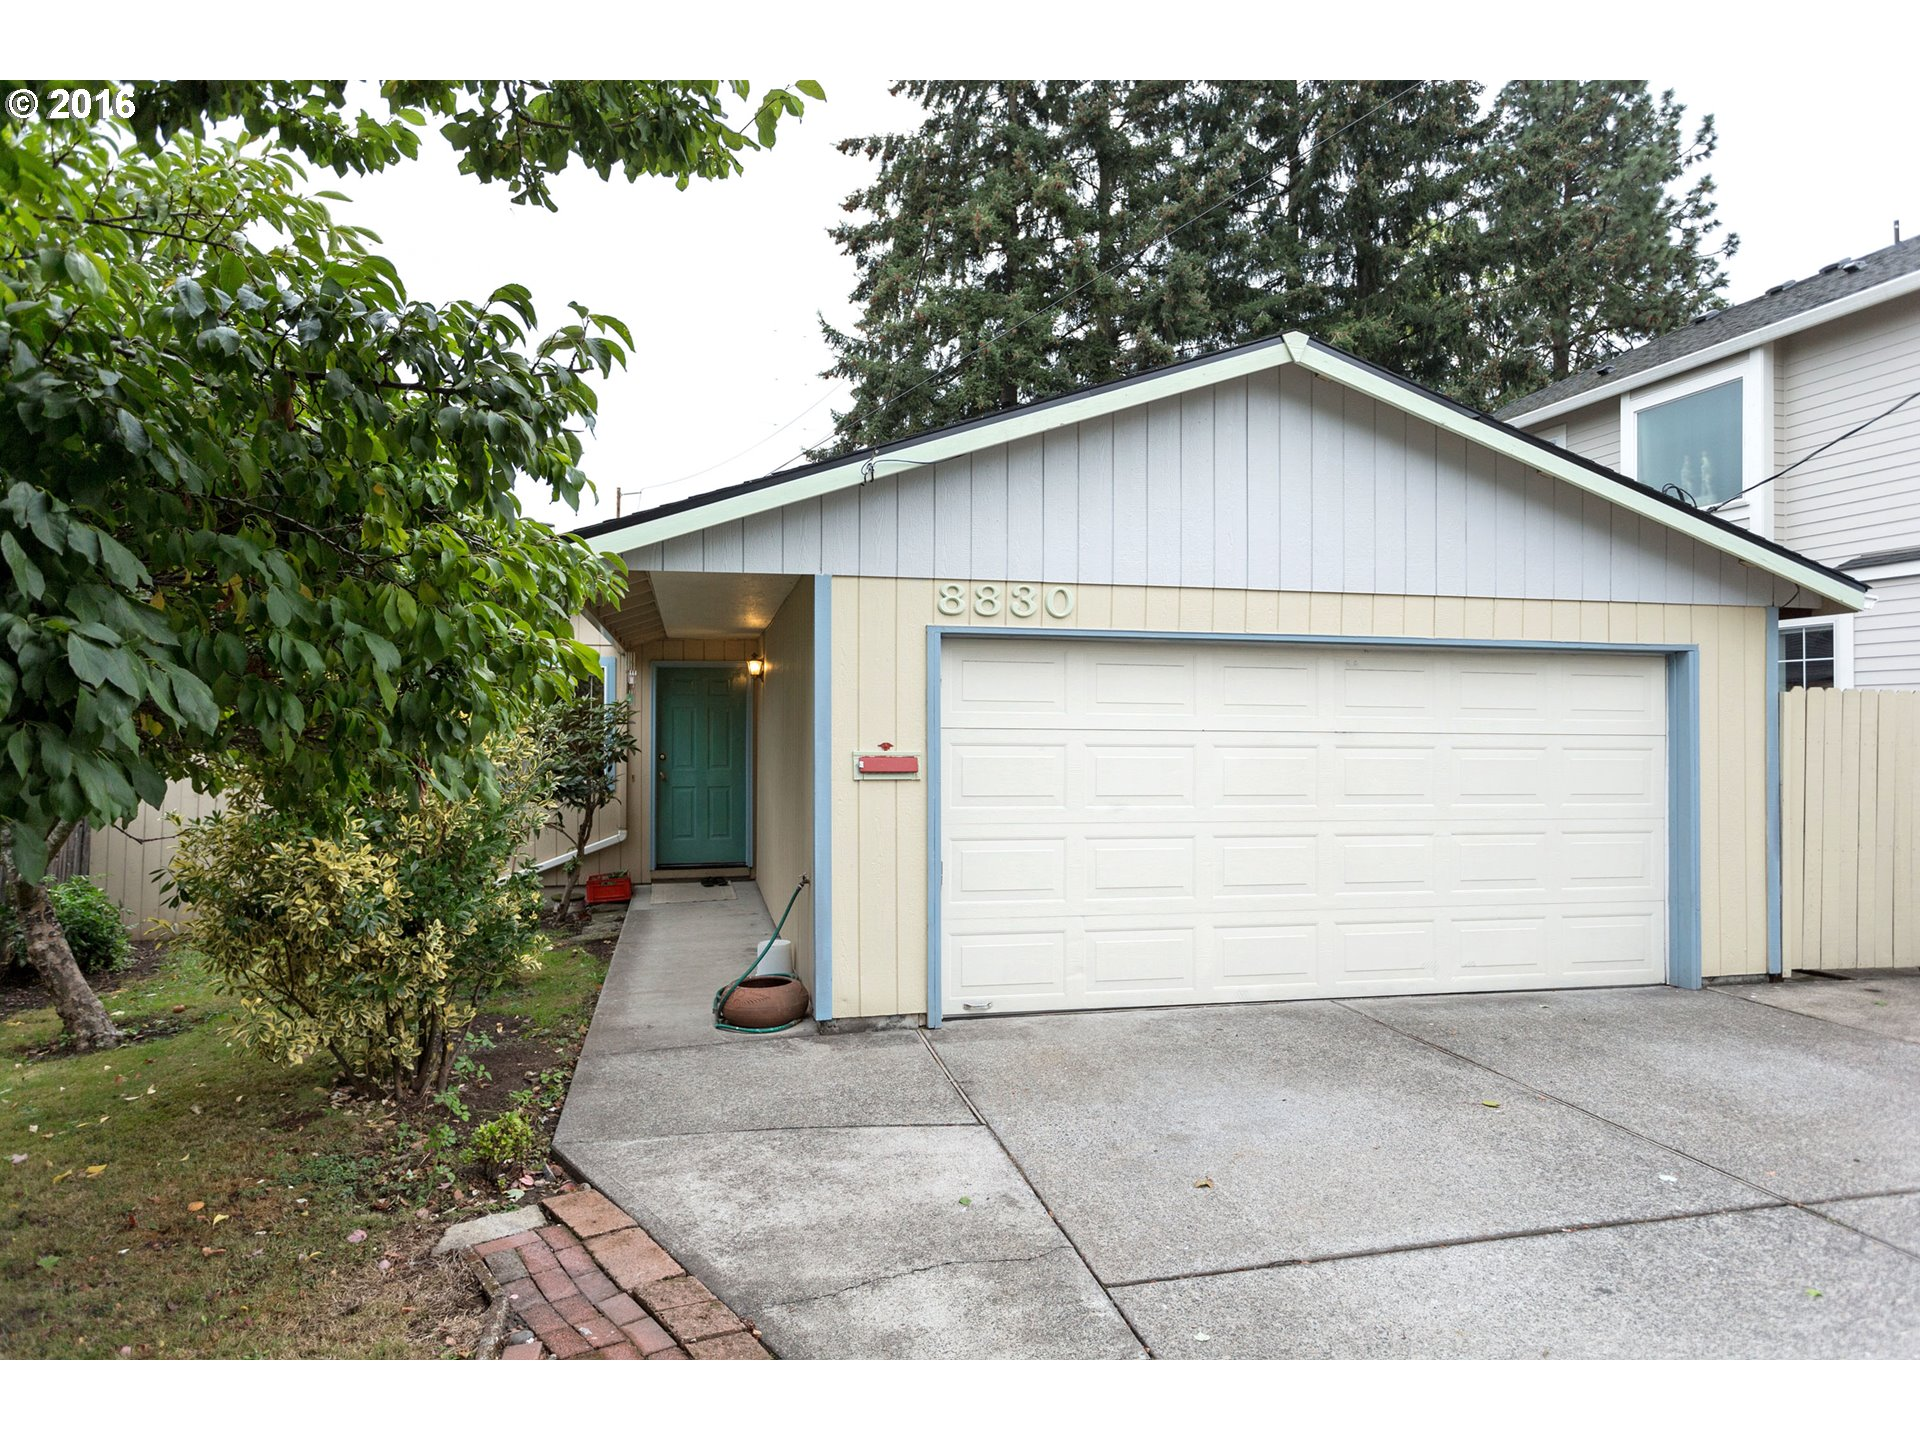 8830 N DRUMMOND AVE, Portland, OR 97217